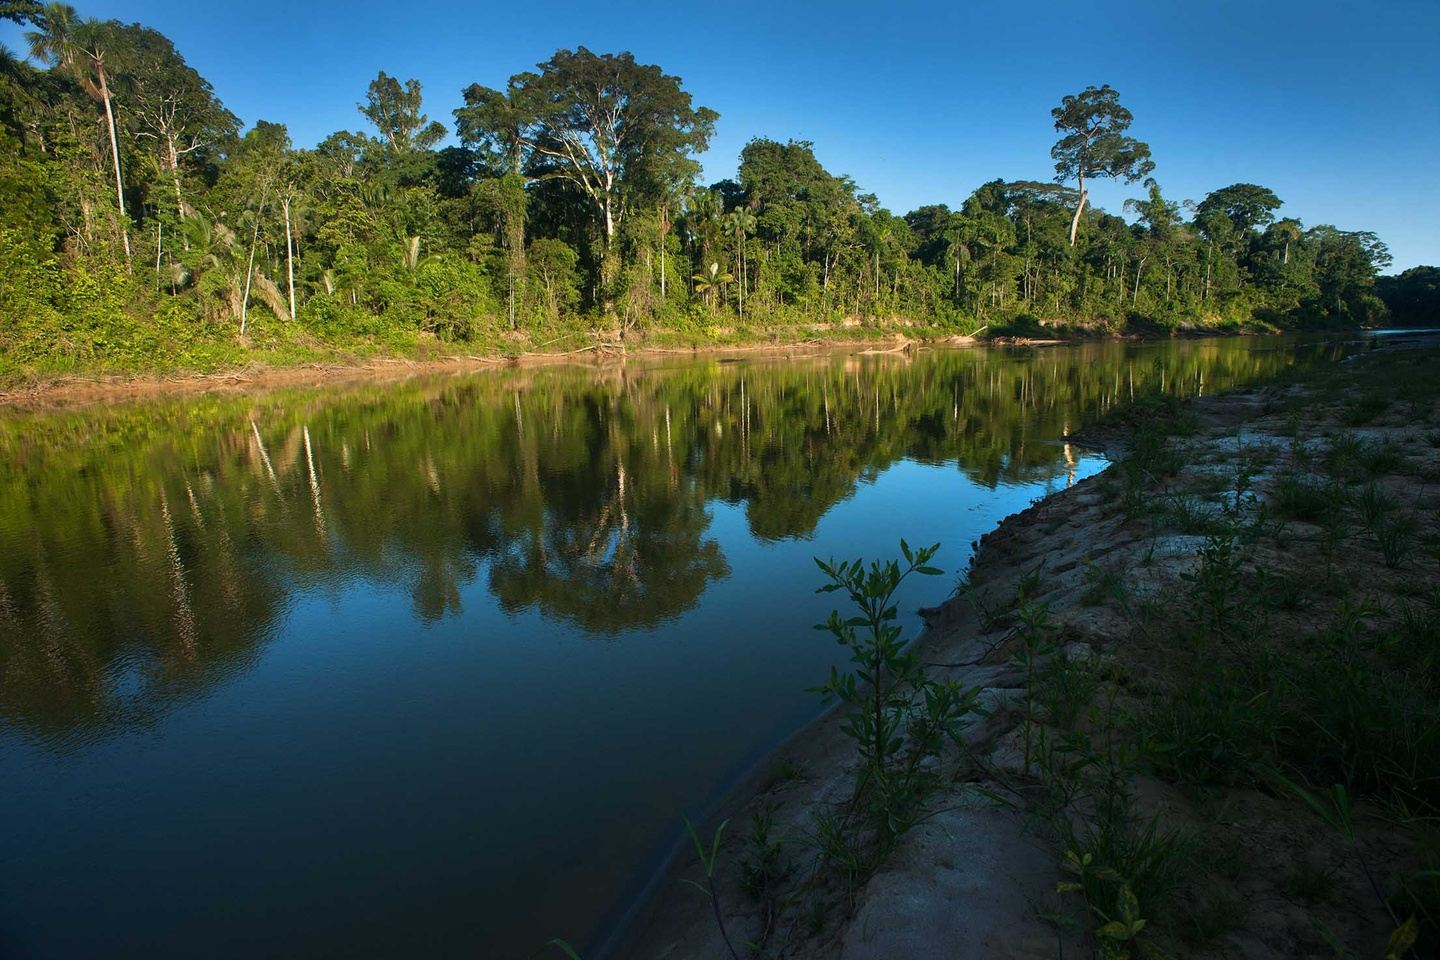 Birding in the South East Peruvian Amazon